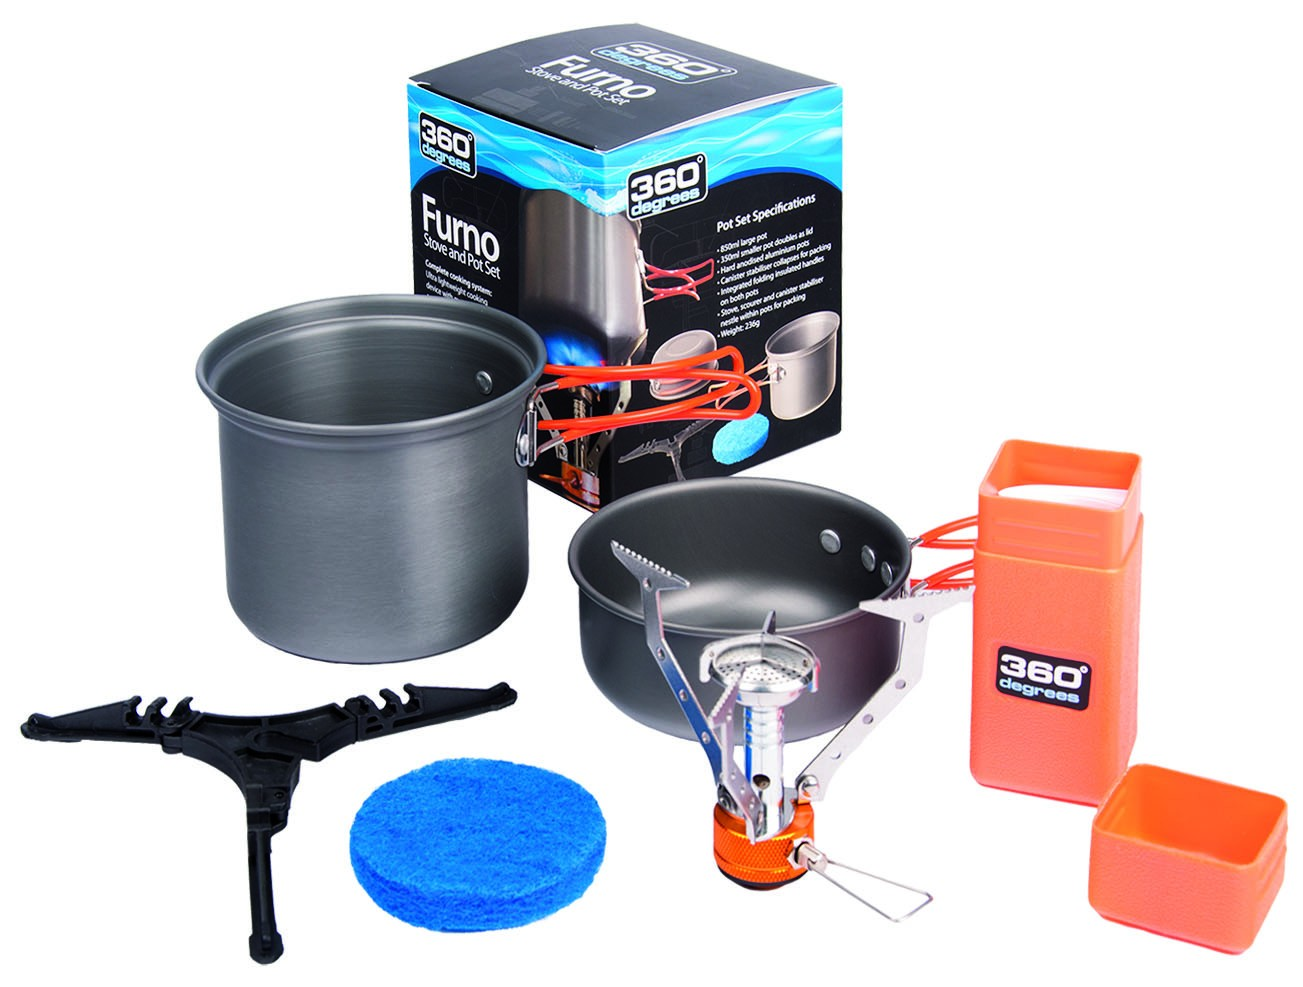 FURNO STOVE AND POT SET RECHAUD + CASSEROLE 360